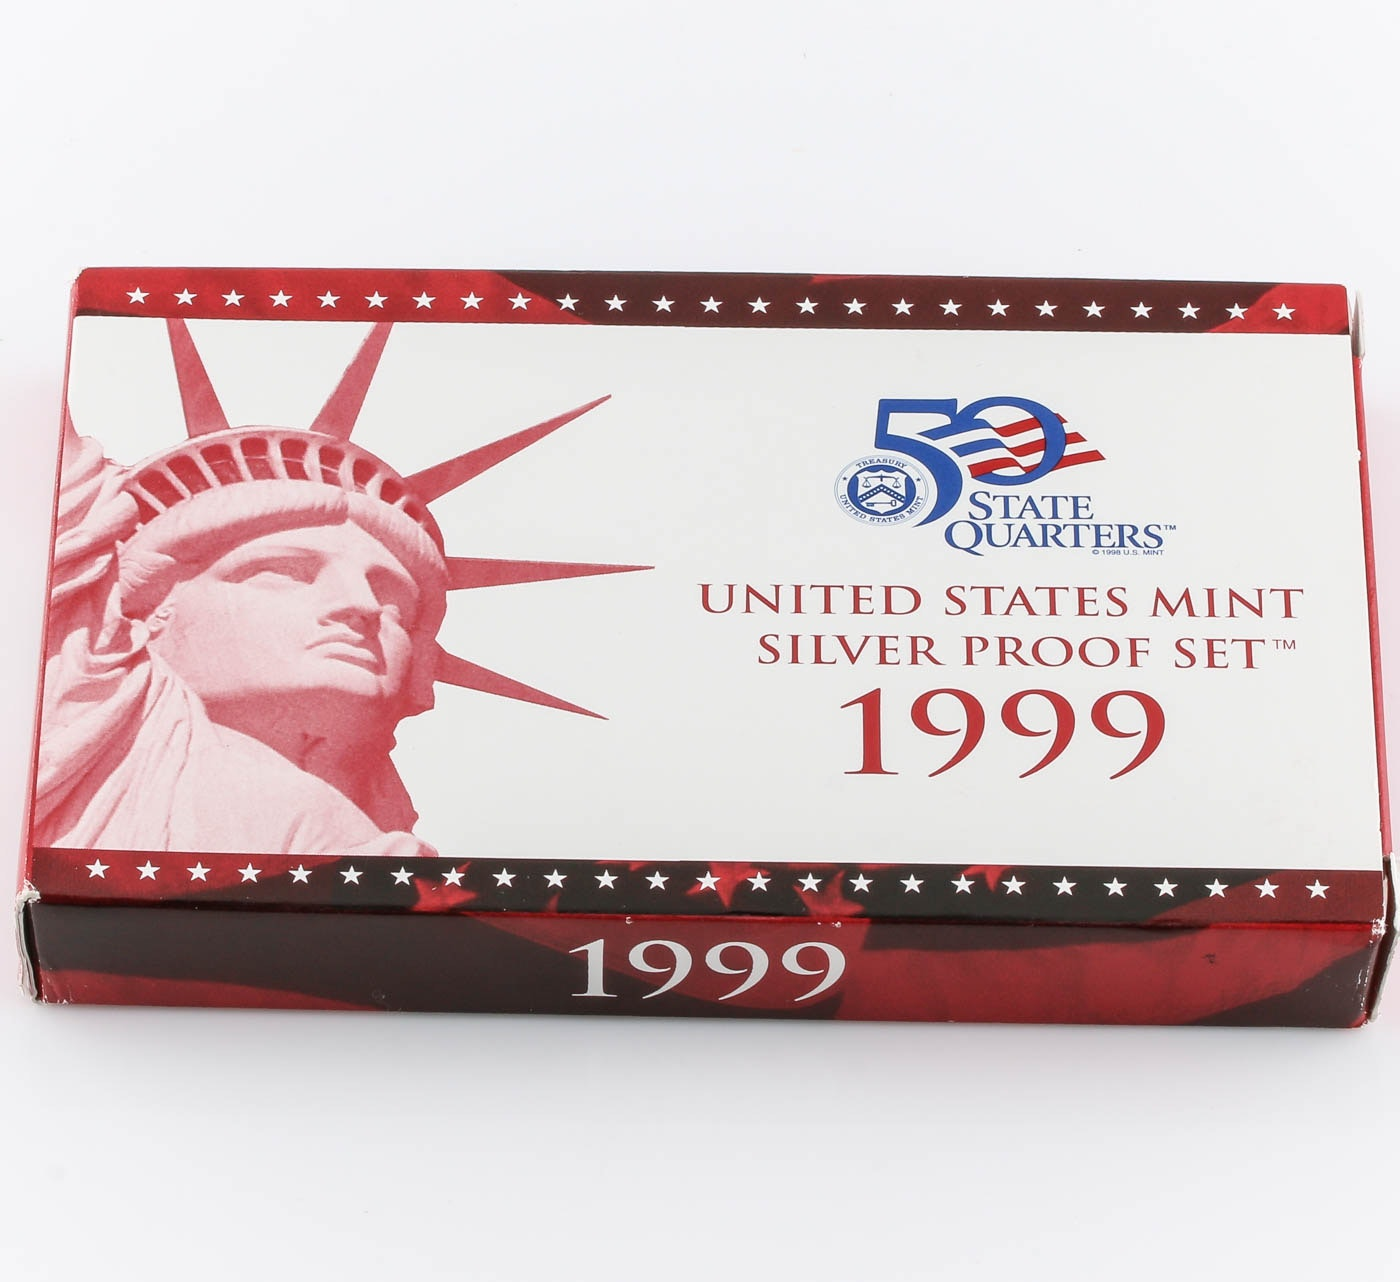 1999 United States Mint Silver Proof Set